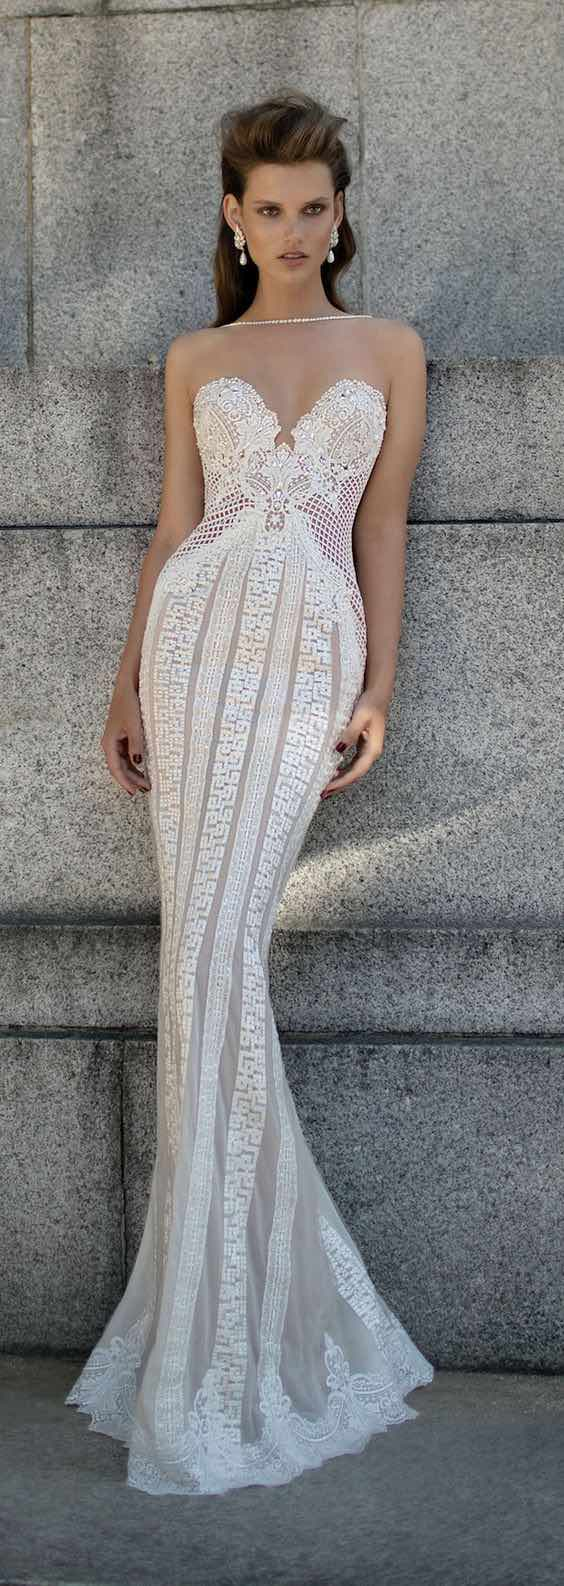 berta wedding dresses second hand second hand wedding dress Quite Diffe From Queen Victoria S White Wedding Dress But Equally Fashionable And Stunning Berta Bridal